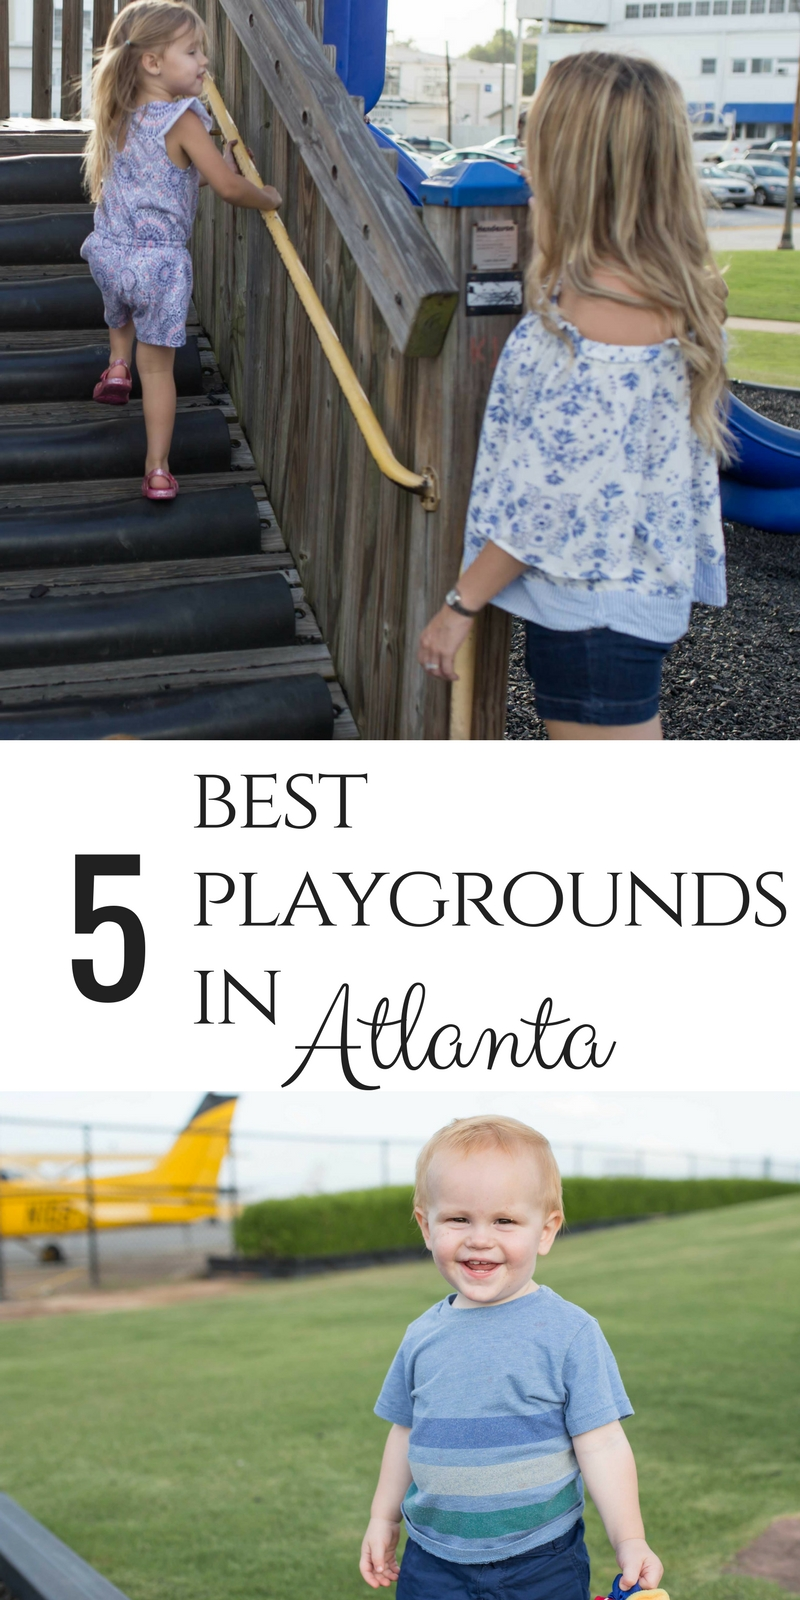 The 5 best playgrounds in Atlanta by lifestyle, family, and travel blogger Casual Claire